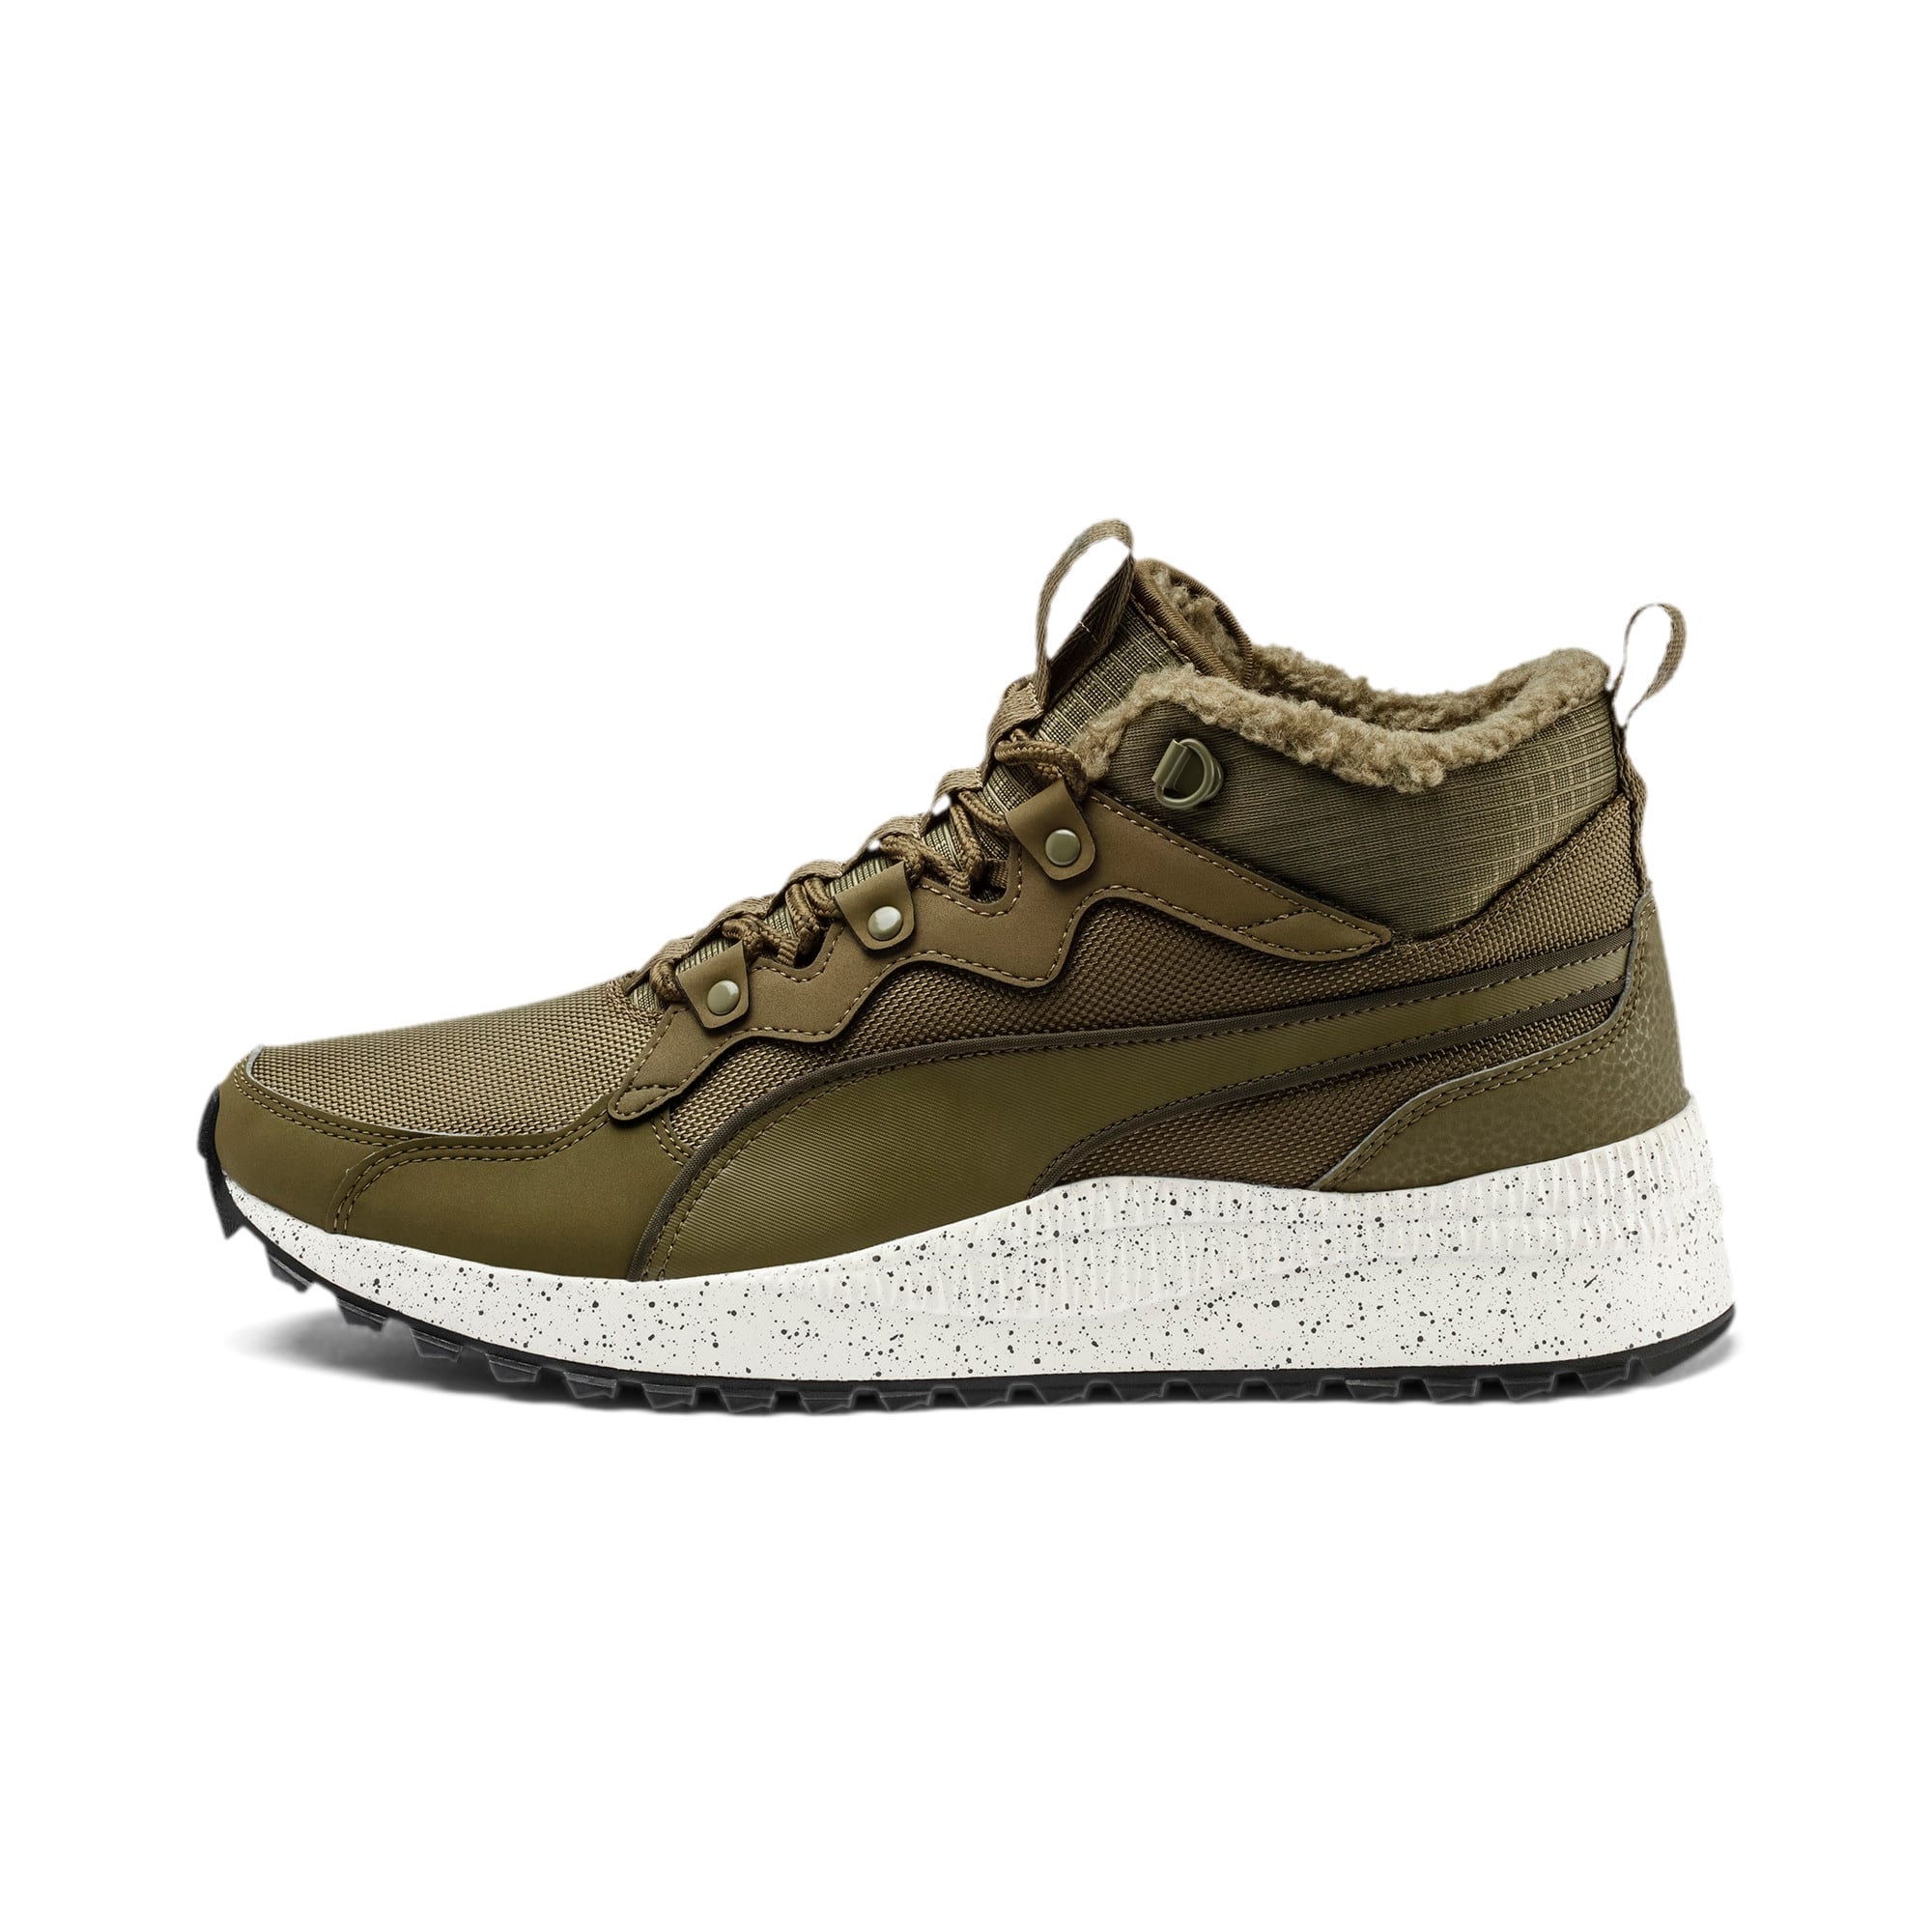 Thumbnail 1 of Pacer Next Winterized Sneakerboots, Burnt Olive-Forest Night, medium